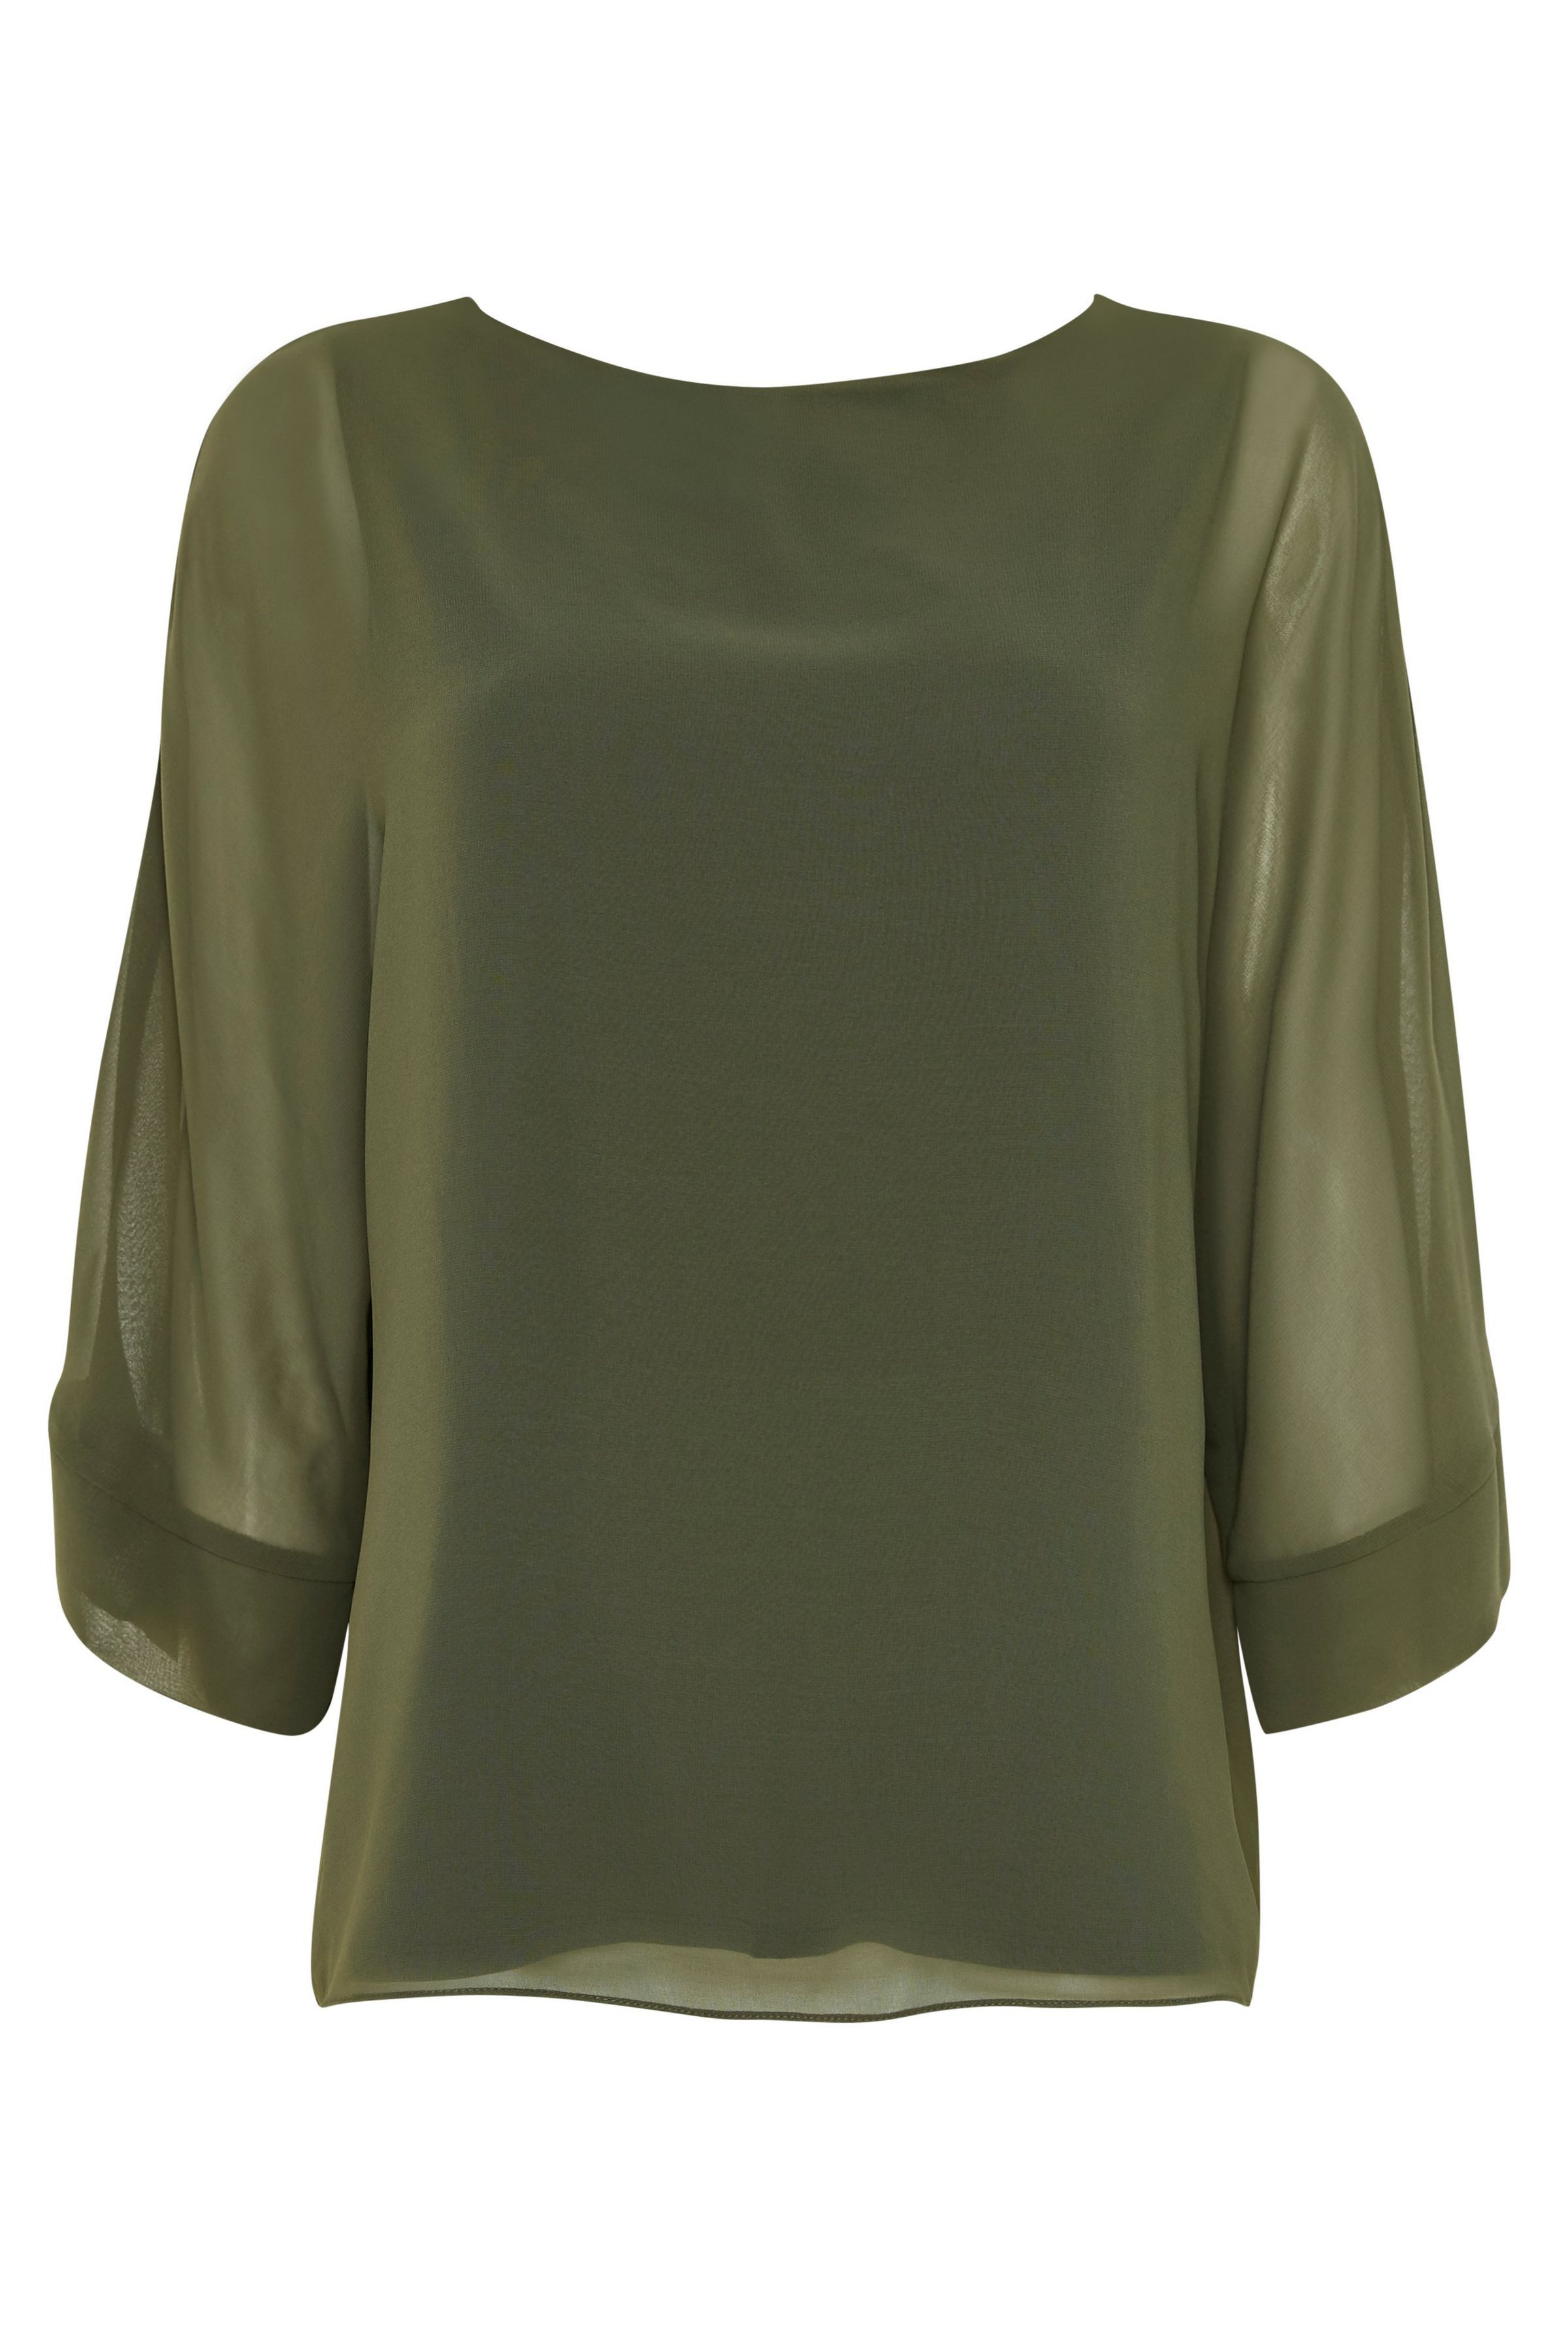 5c490271906cfa Khaki Overlay Blouse   Wallis   @giftryapp   Lust Have Clothes in ...